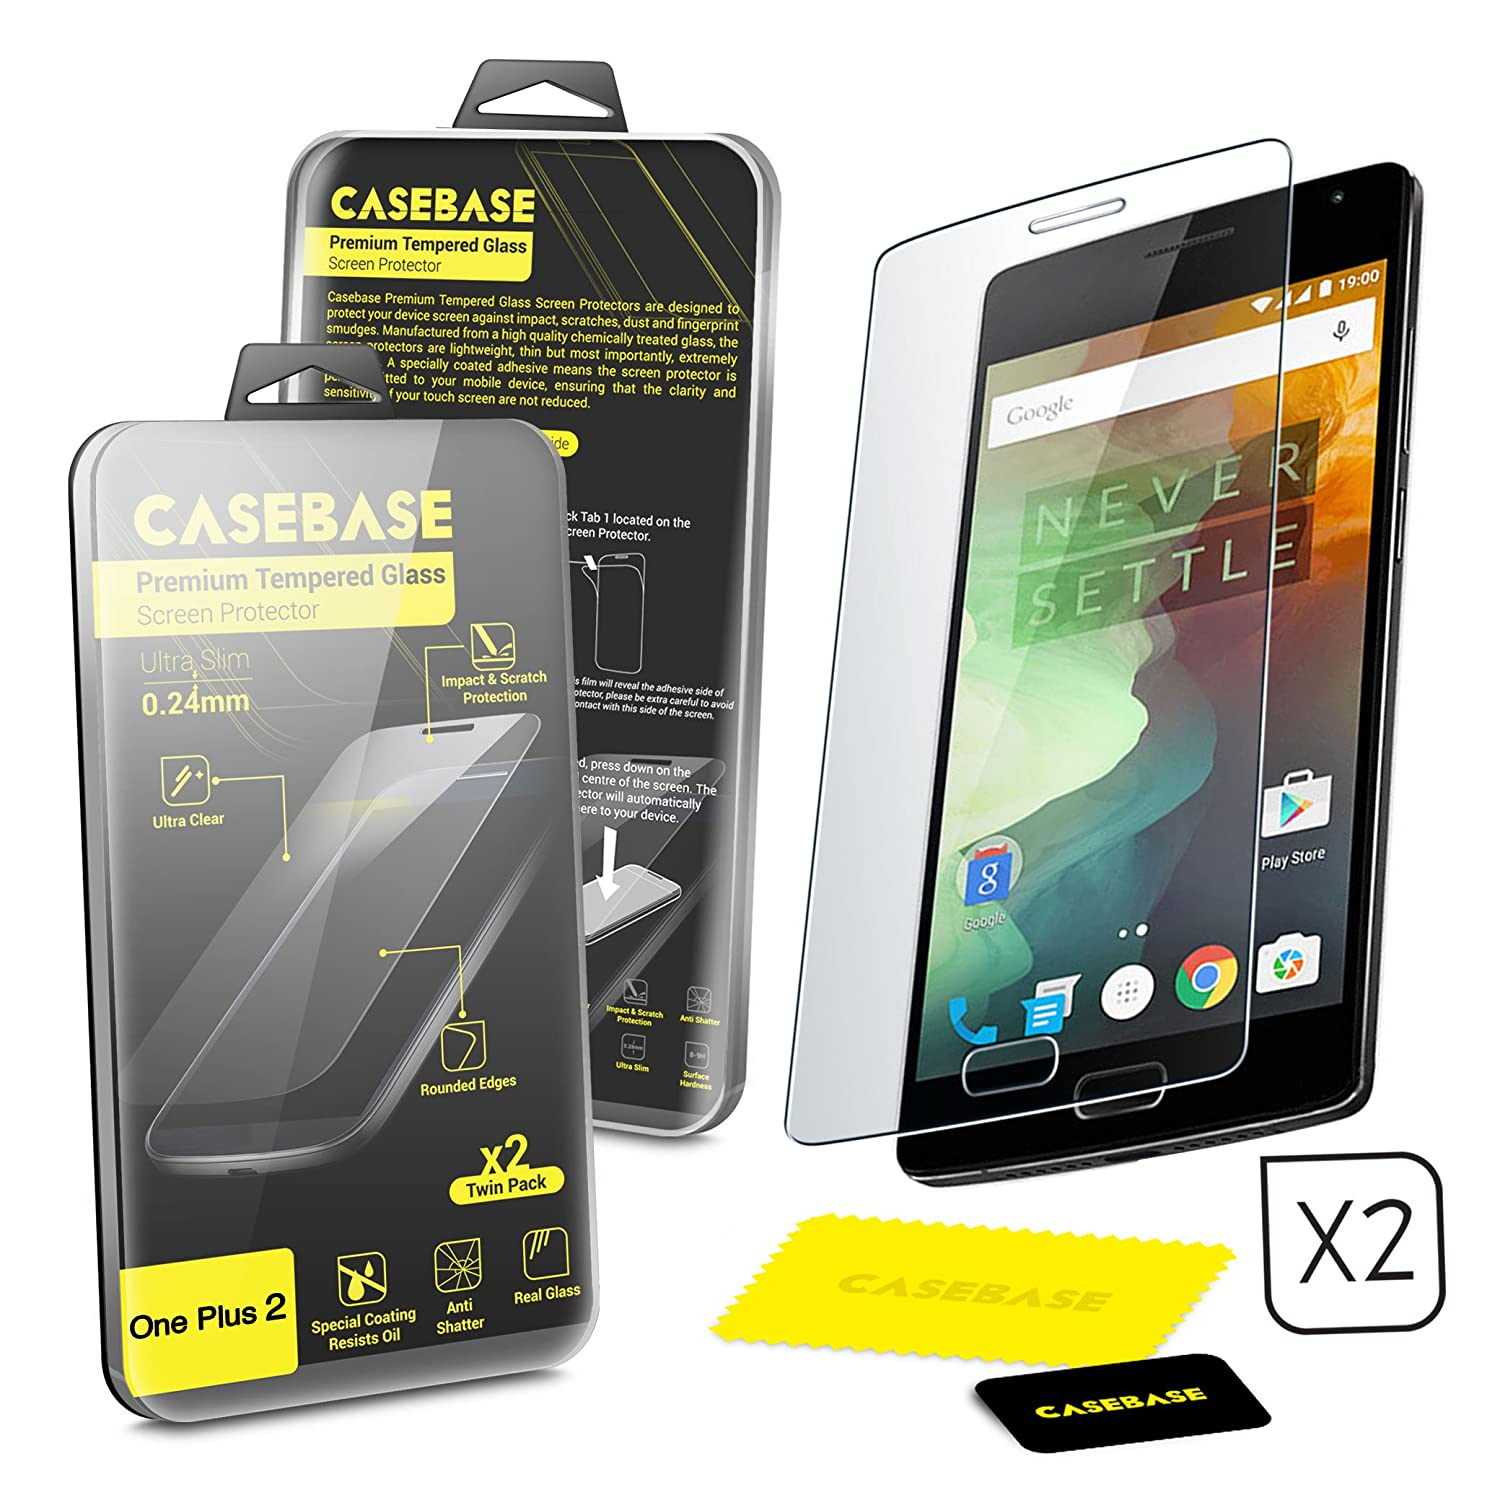 new product 95b92 13032 Casebase Tempered glass for OP2 on sale!!! - OnePlus Community